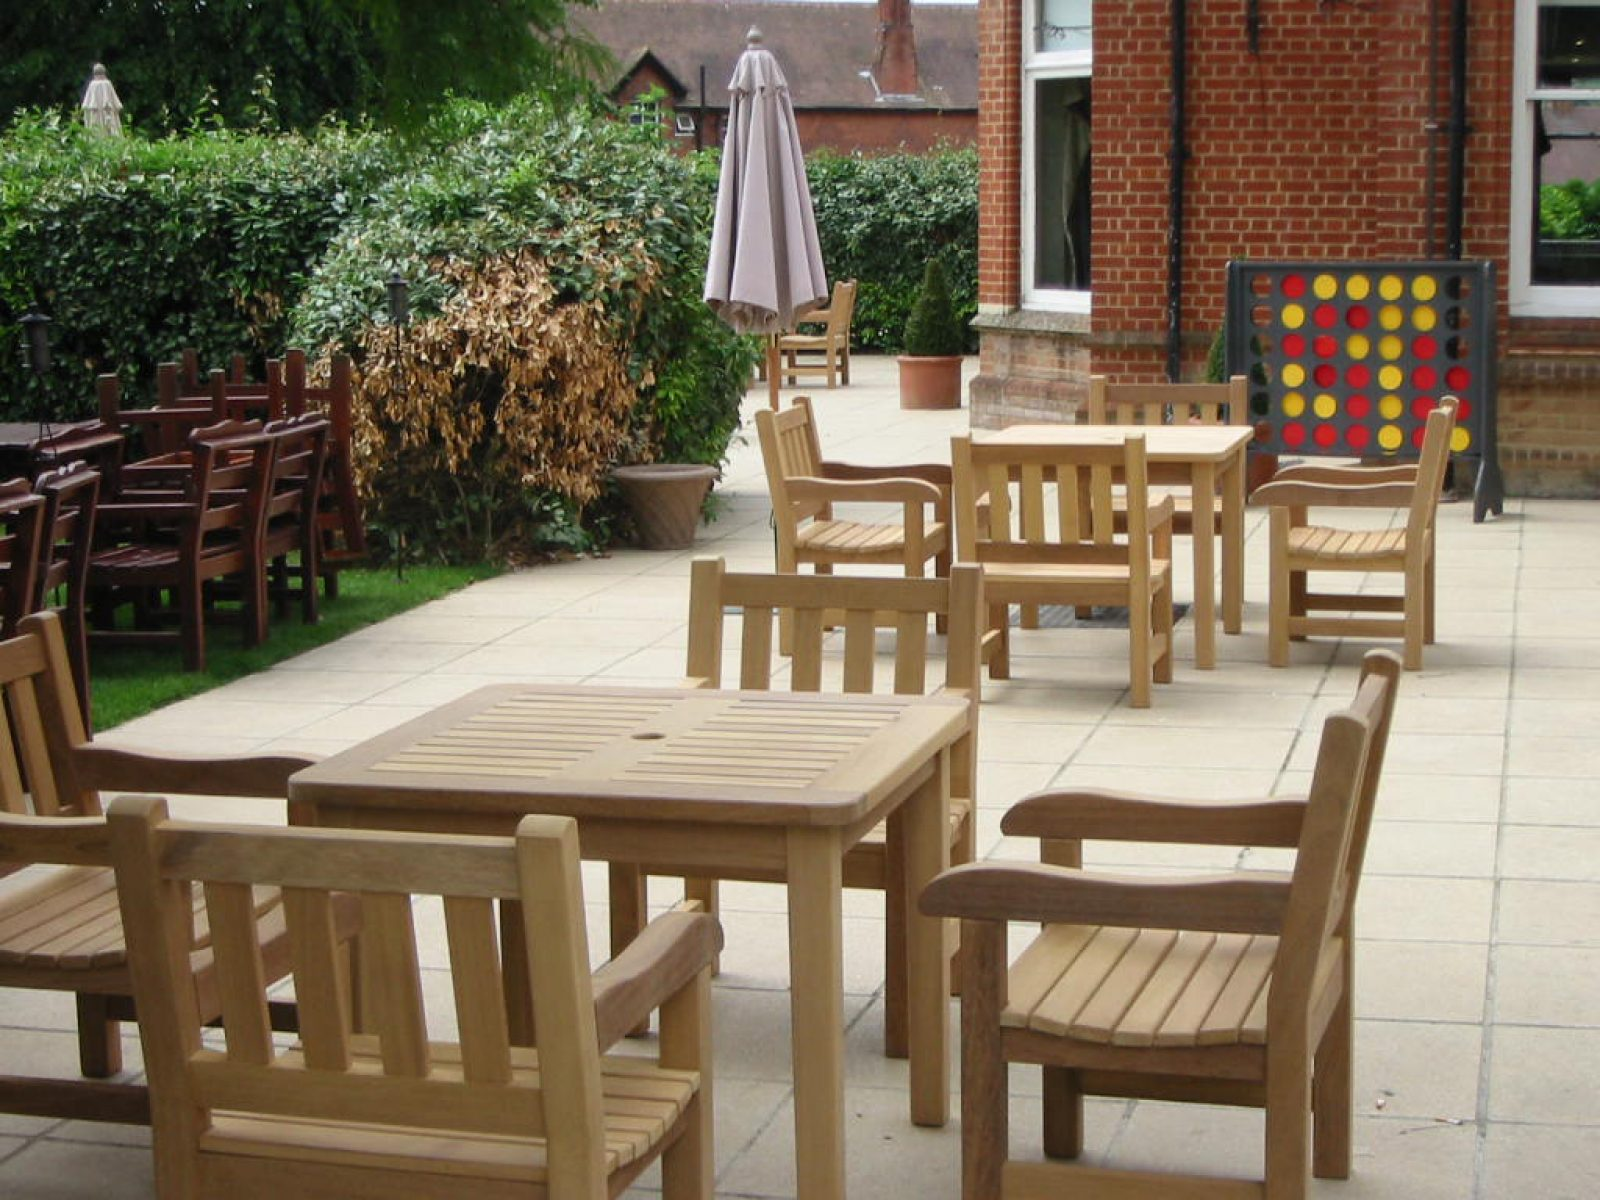 Bespoke Wooden Garden Tables Amp Beer Garden Patio Tables Woodcraft Uk